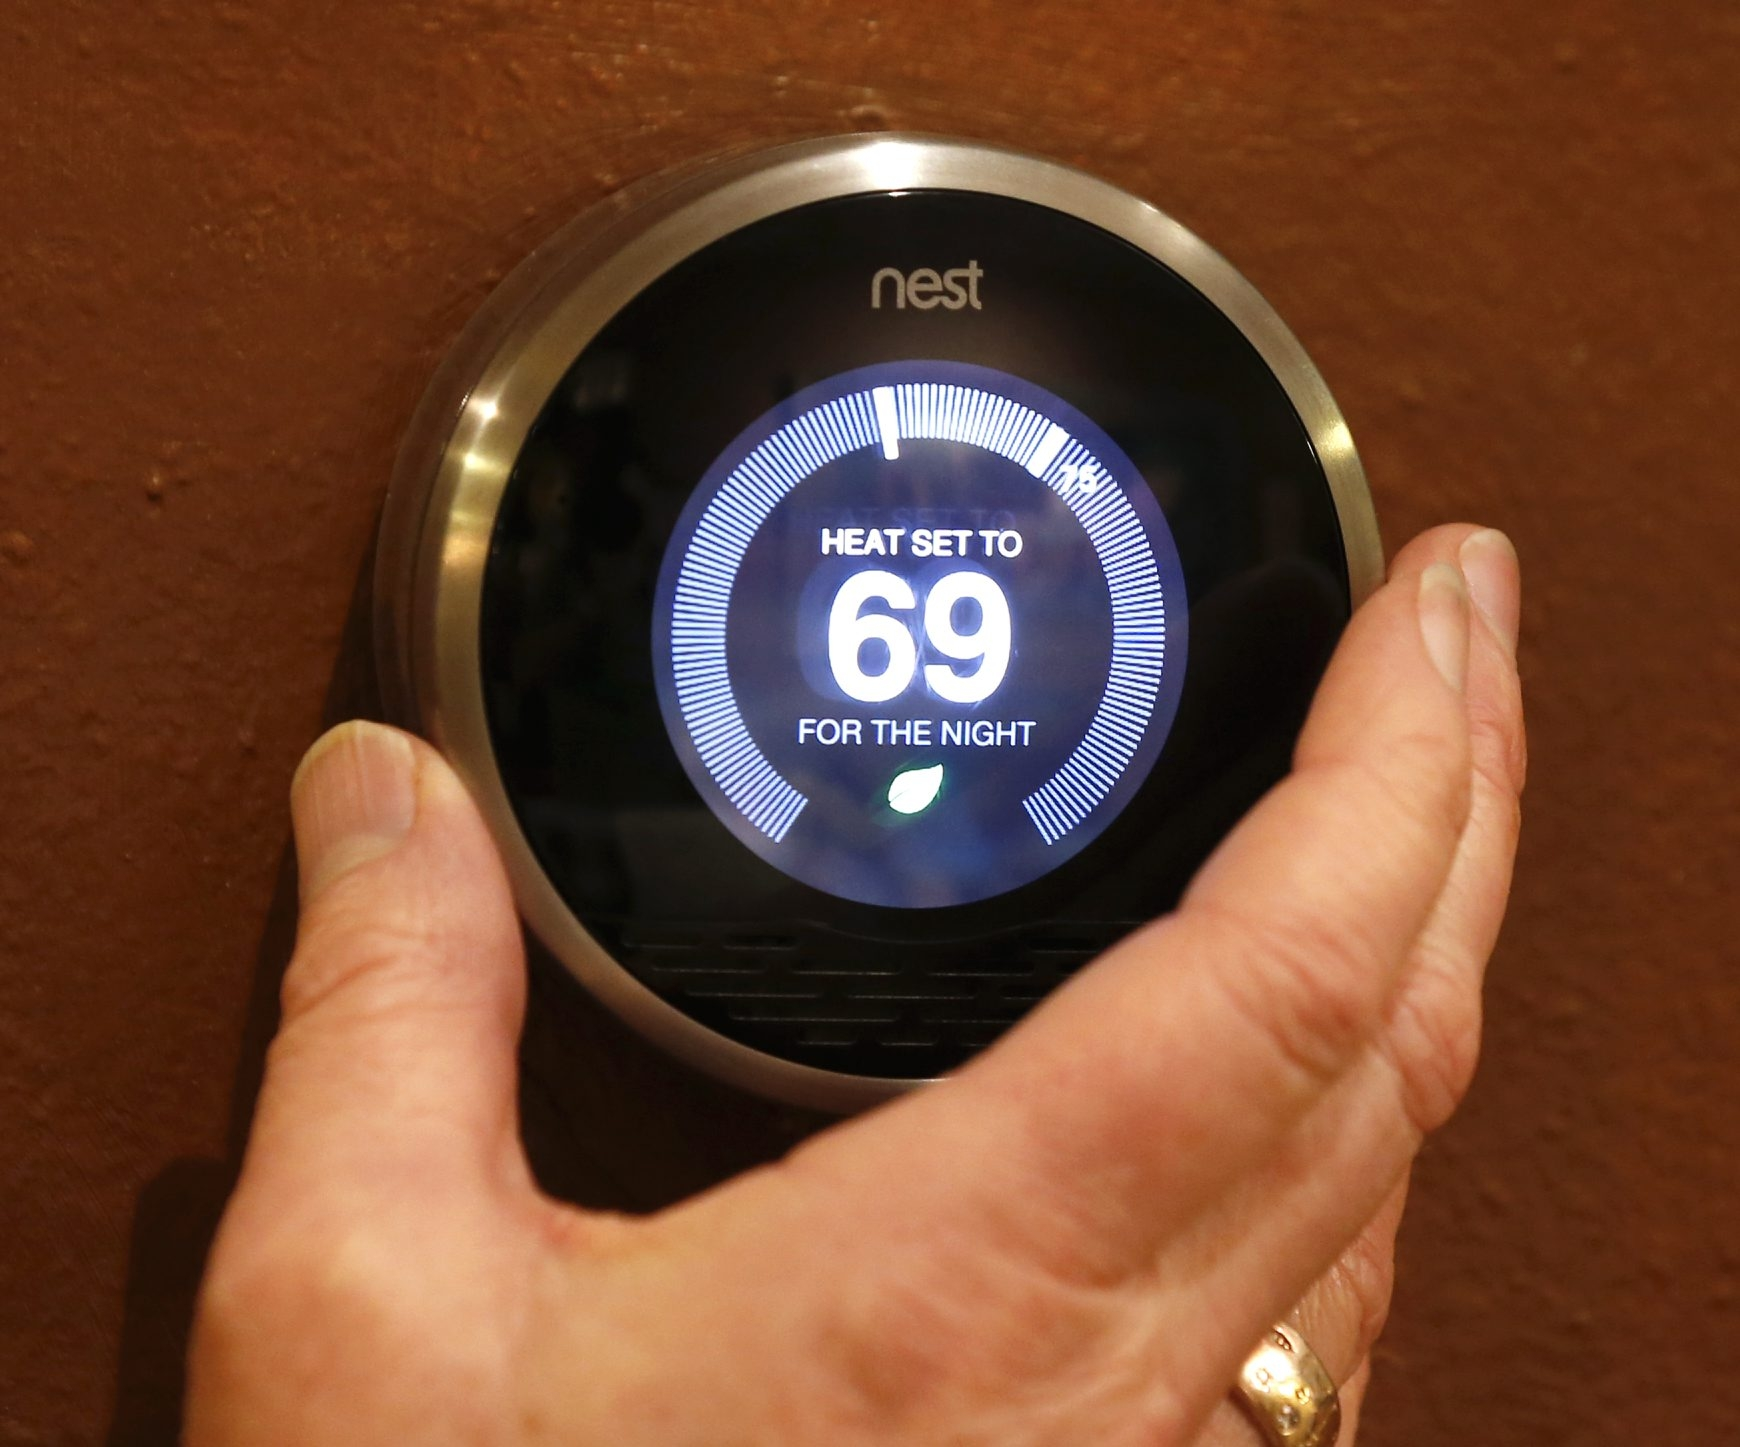 Google bought Nest, a home automation company, for $3.2 billion, taking Google further into the home ecosystem.